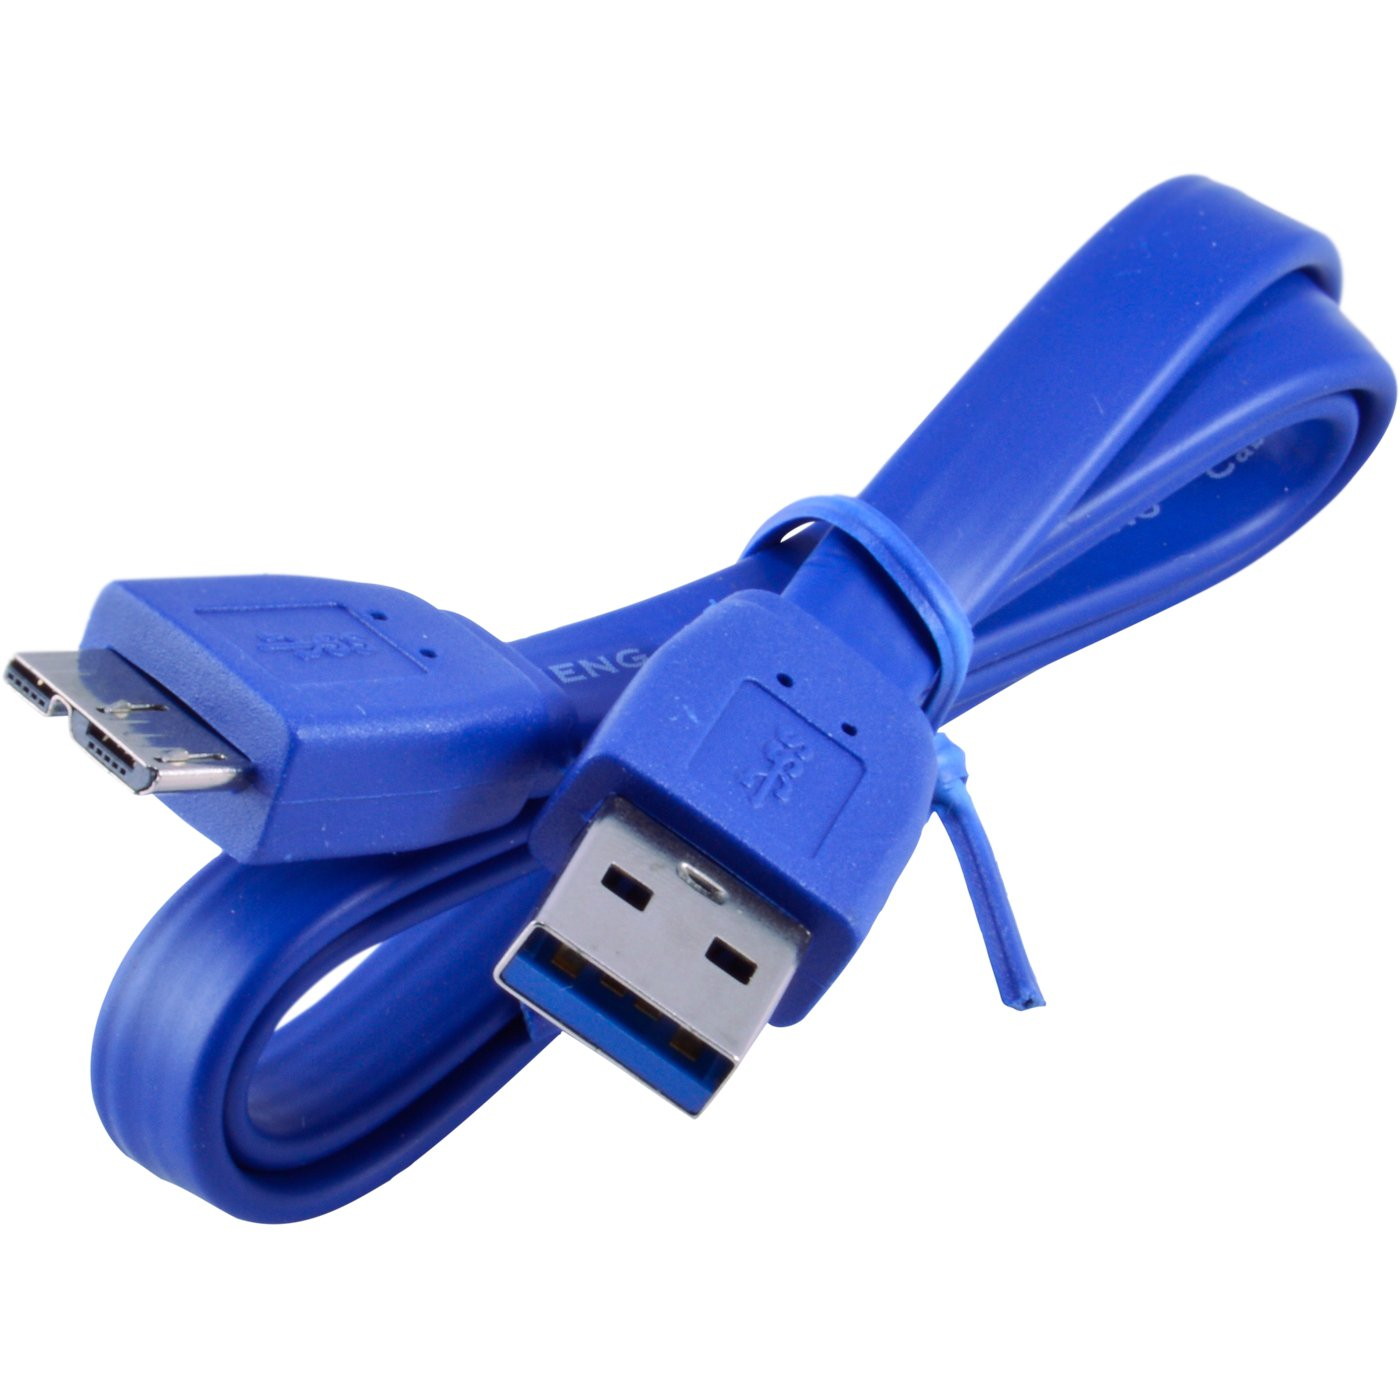 1FT Micro USB 3.0 Flat Cable for WD My Passport & My Book External Hard Drive